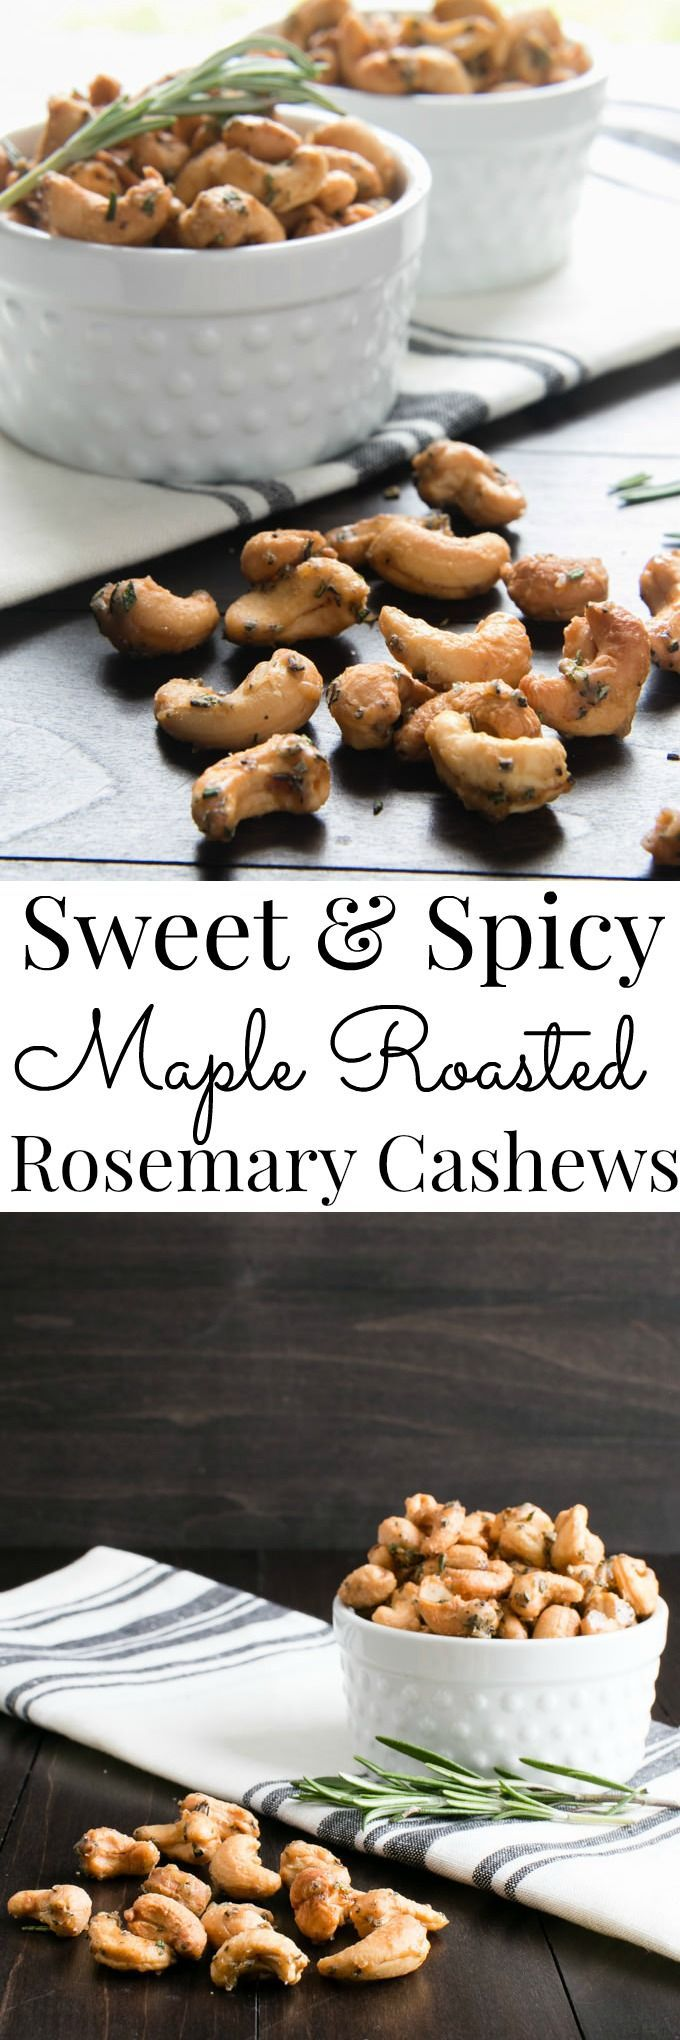 A contrast of spices, rosemary and sweet come together in this Vegan grab and go snack or appetizer. | Vanilla And Bean